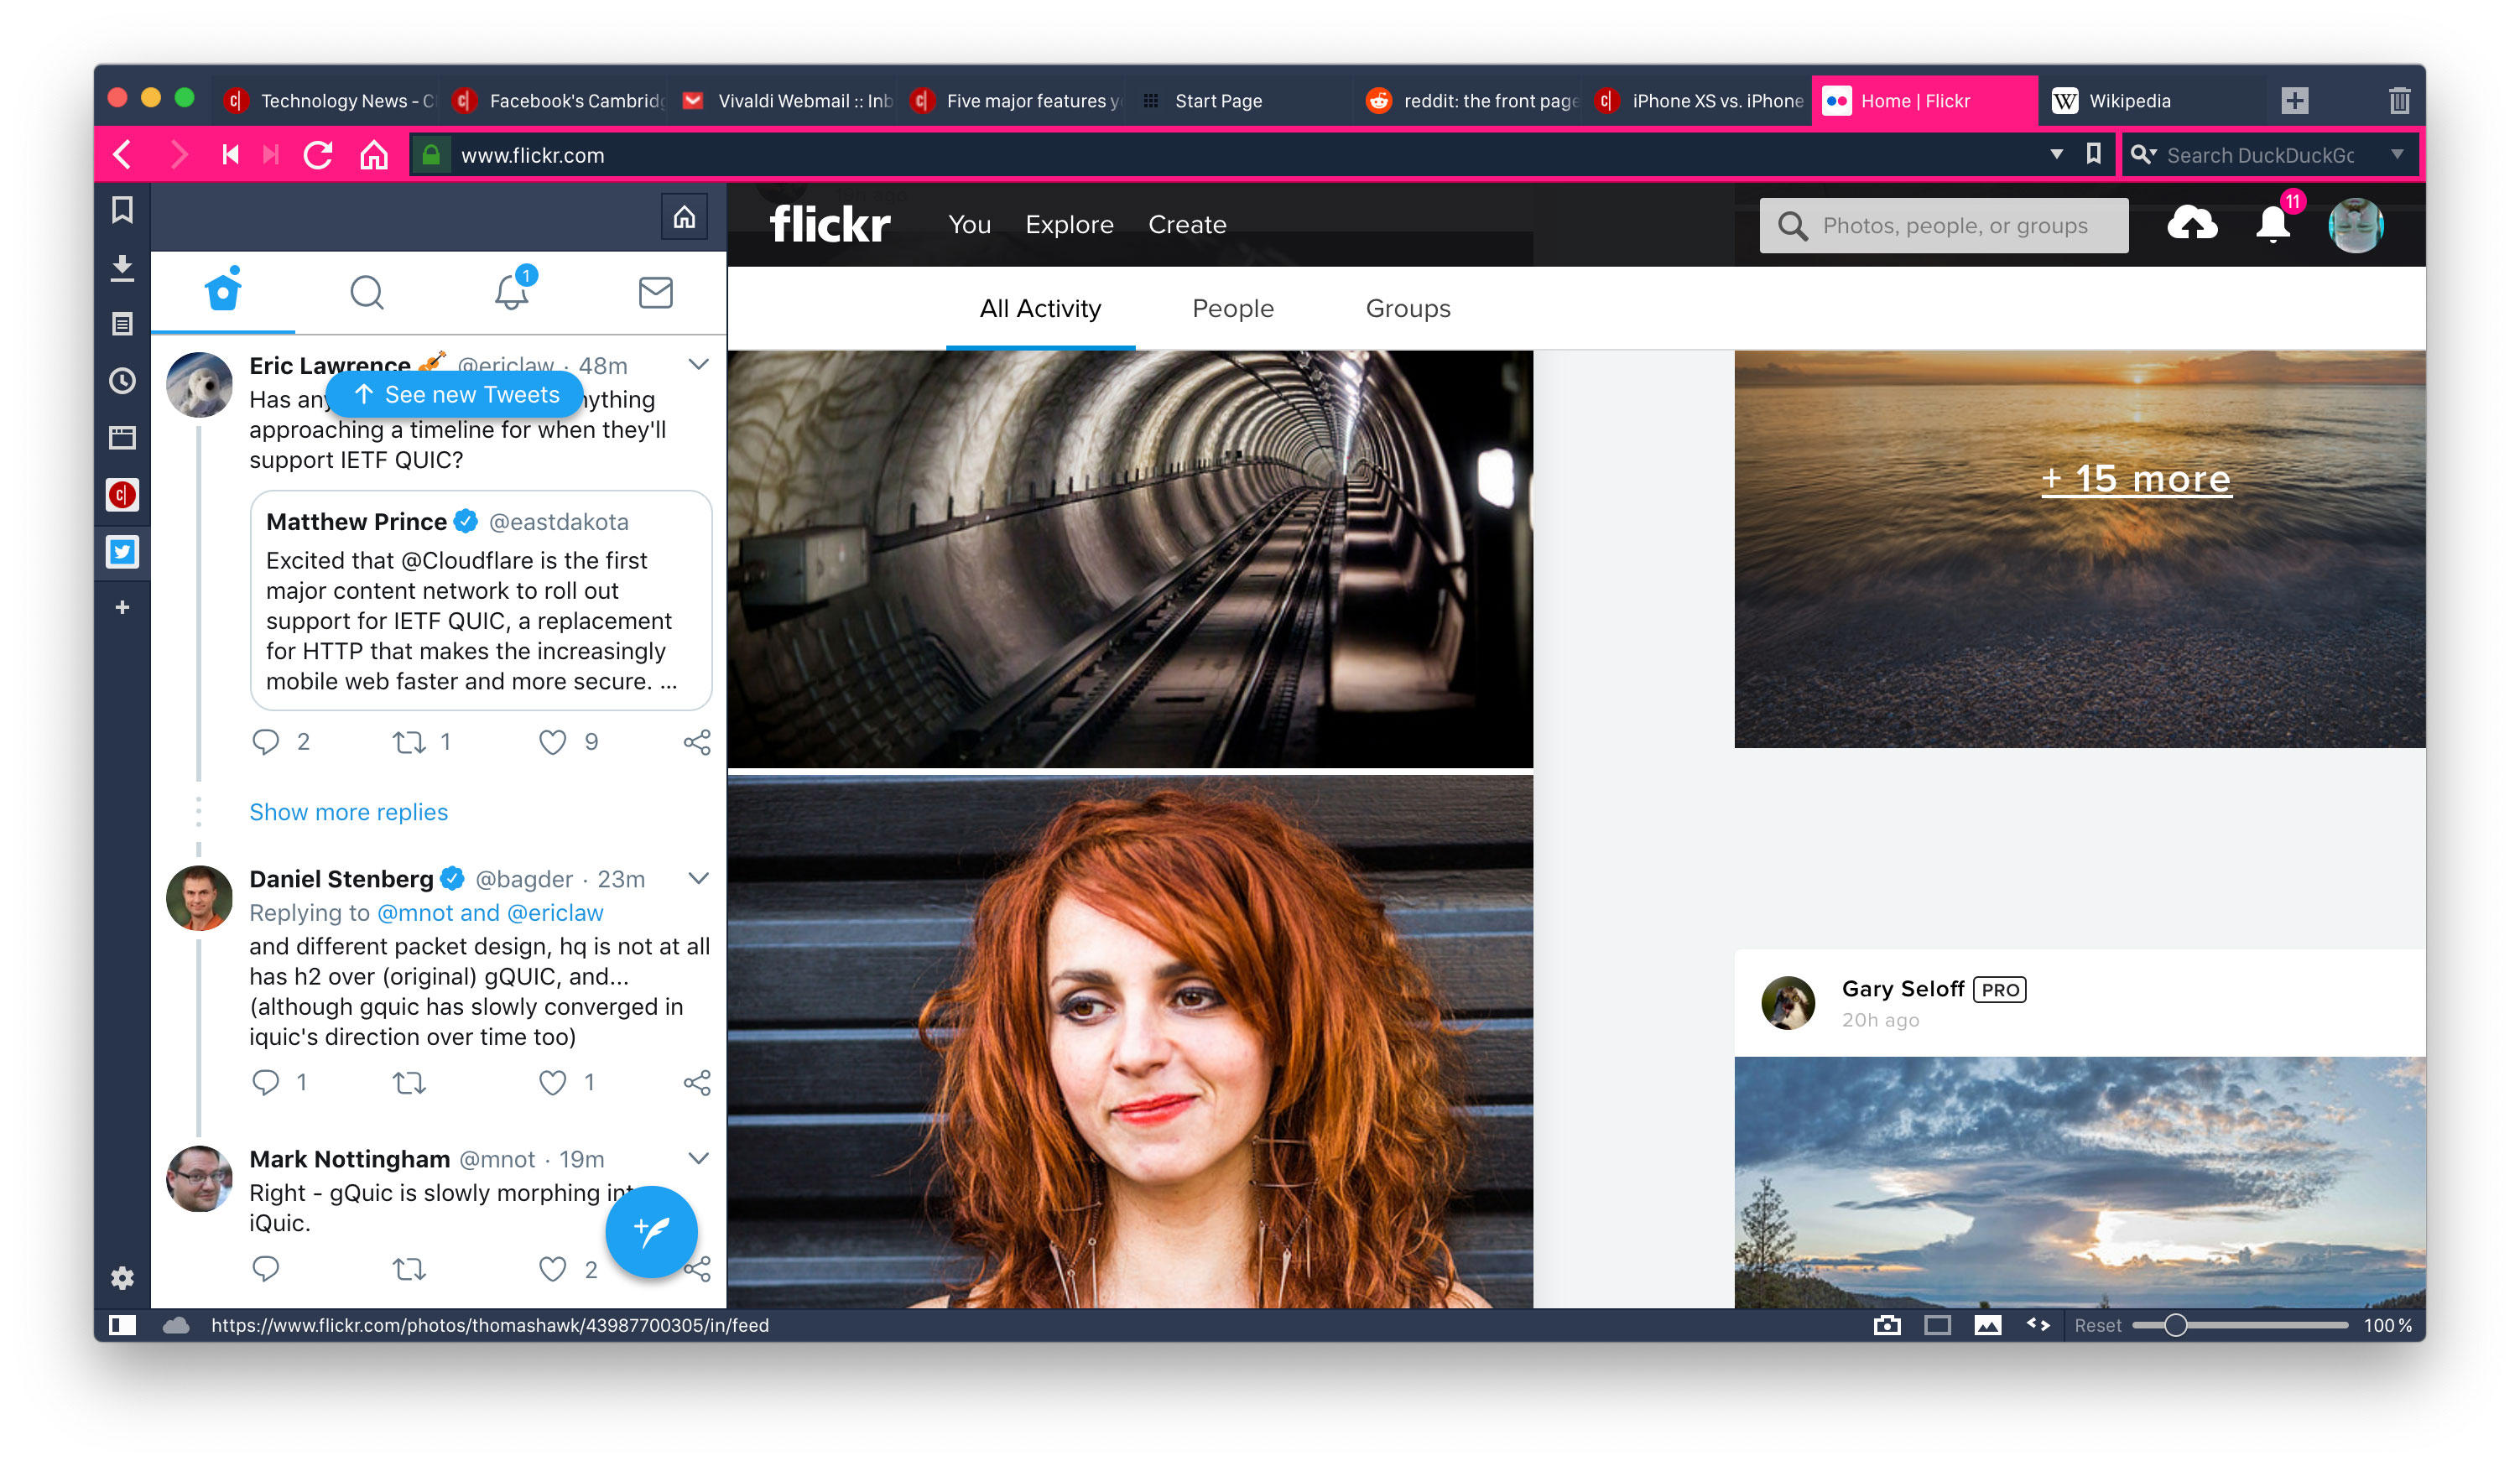 Vivaldi 2.0 themes can mimic the color scheme of the website you're visiting -- in this case Flickr -- and web panels on the left can give you a quick look at websites like Google Translate, Twitter, or whatever else you like.